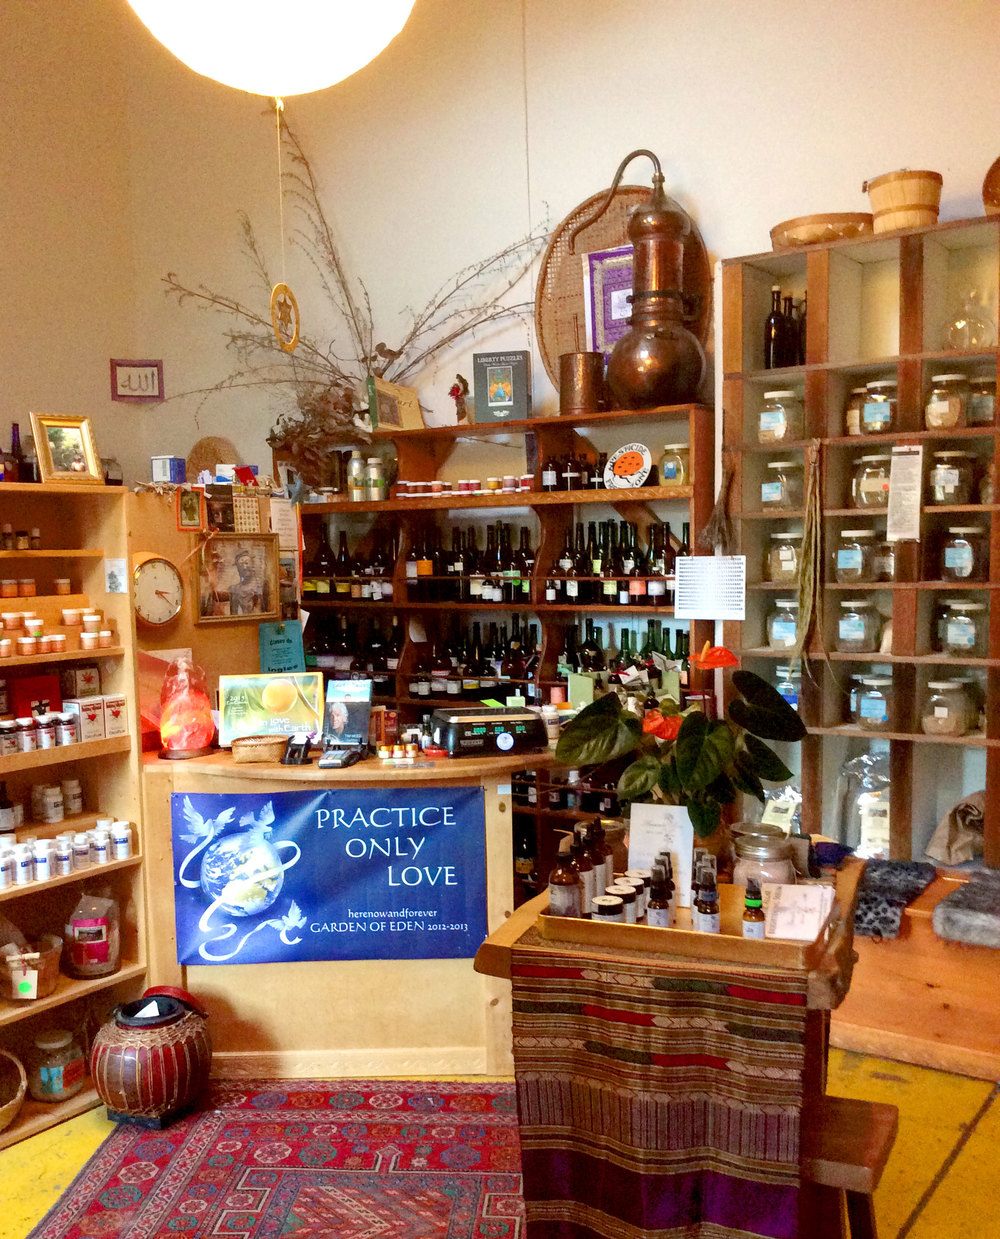 About the Apothecary — Garden of Eden Apothecary